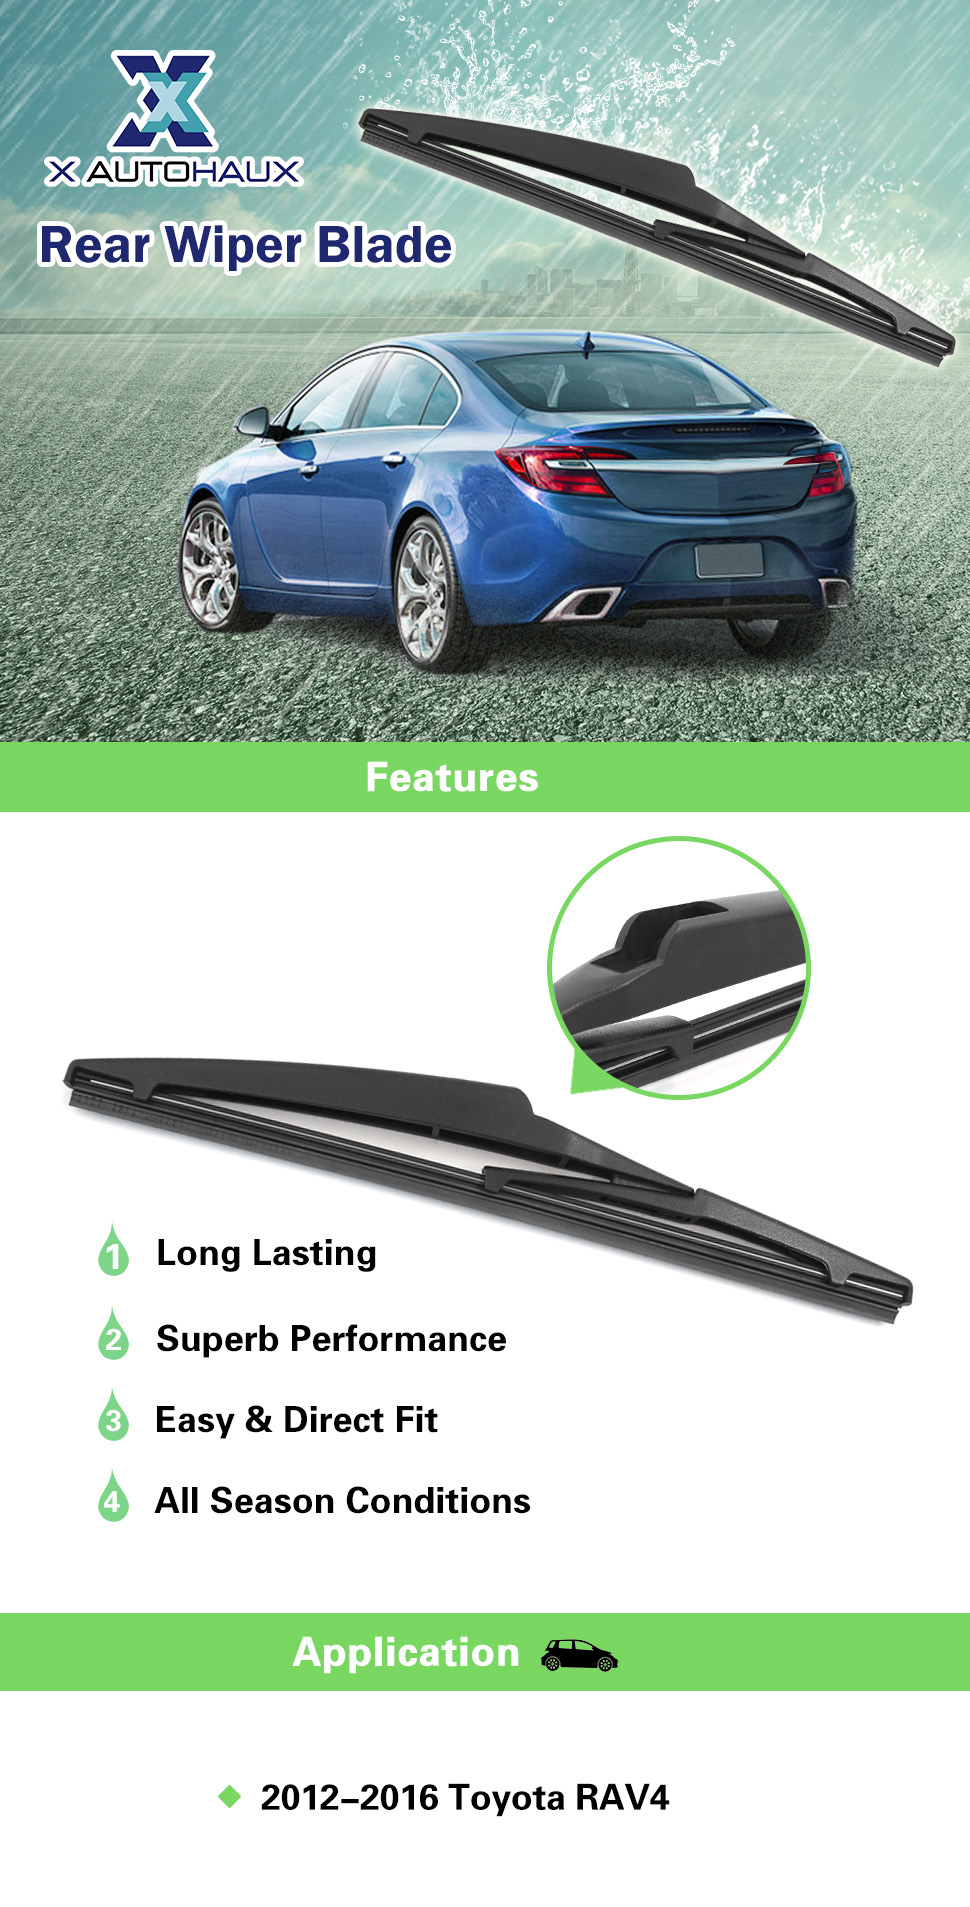 x autohaux 250mm 10 inch rear window windshield wiper blade for toyota rav4. Black Bedroom Furniture Sets. Home Design Ideas